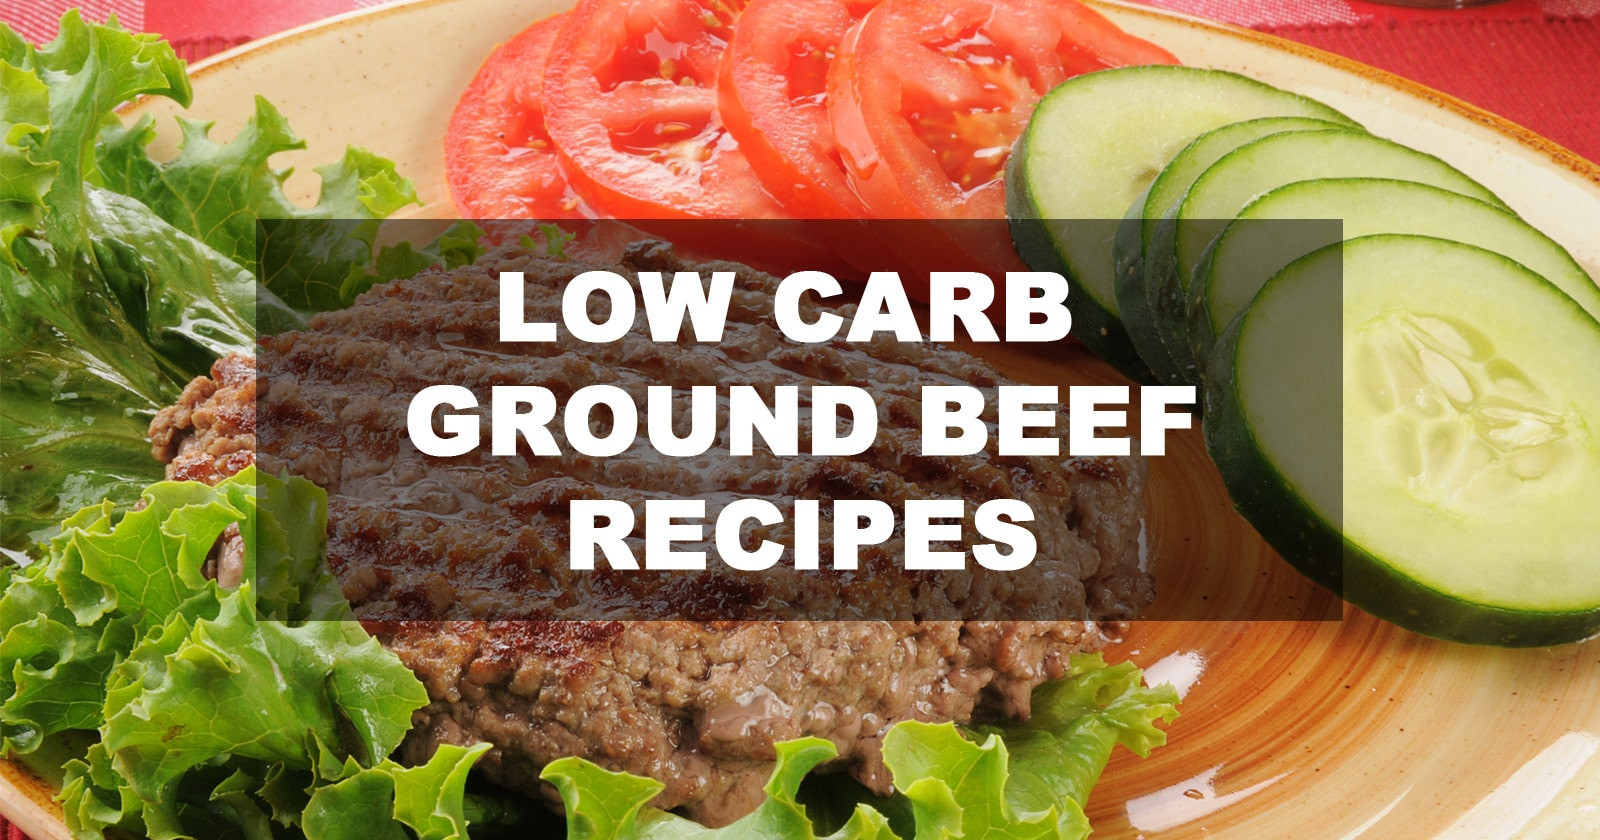 Hamburger Recipes Low Carb  Best Low Carb Ground Beef Recipes October 2018